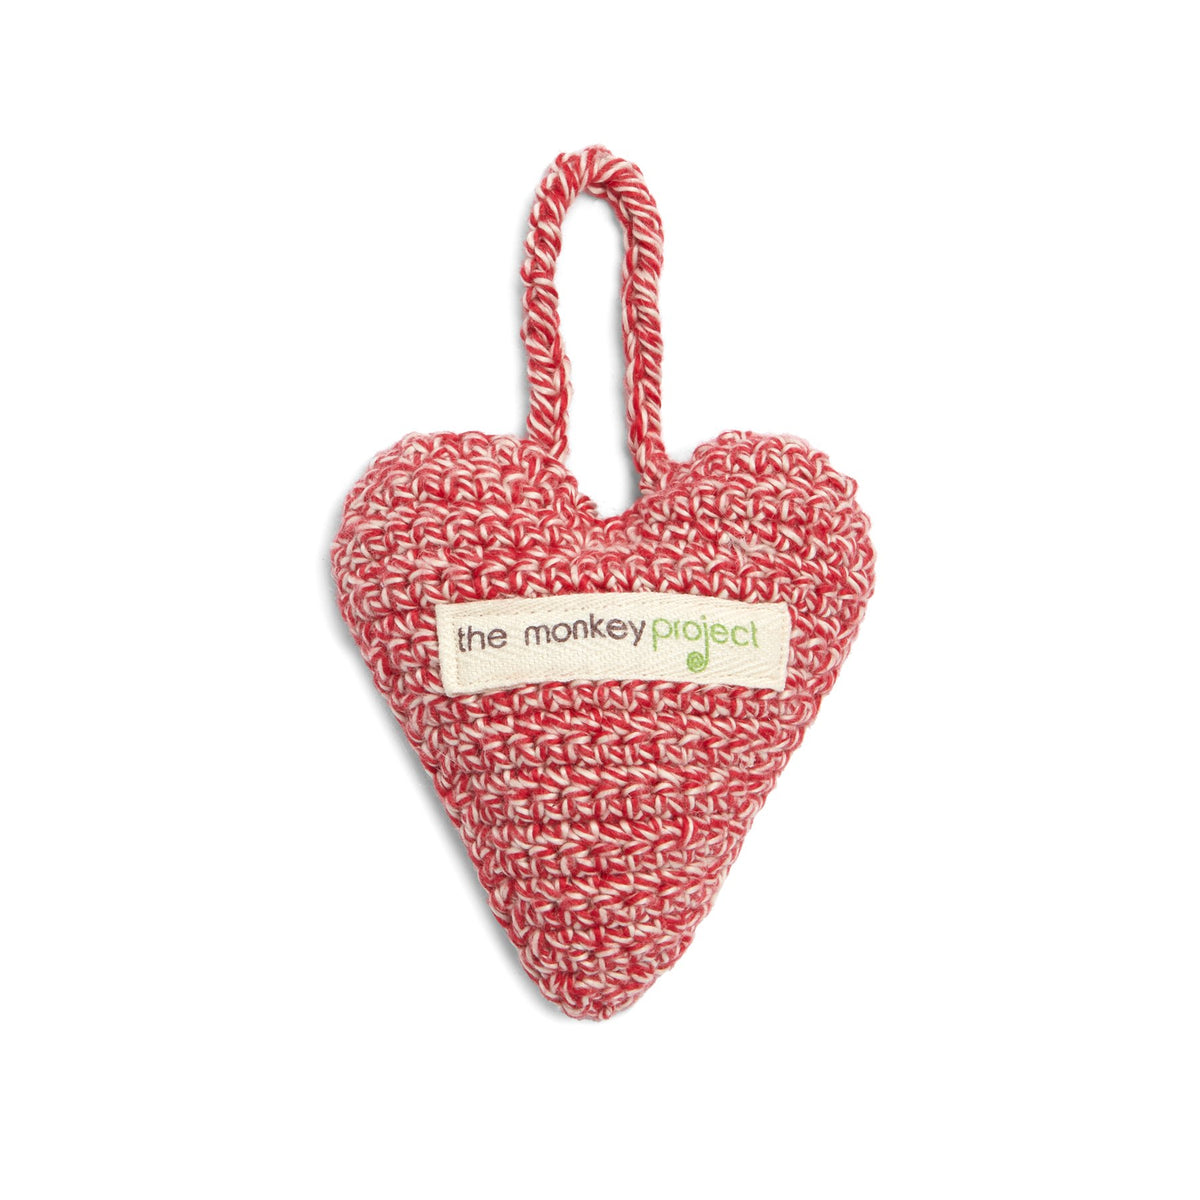 Heart Ornament by Monkey Project